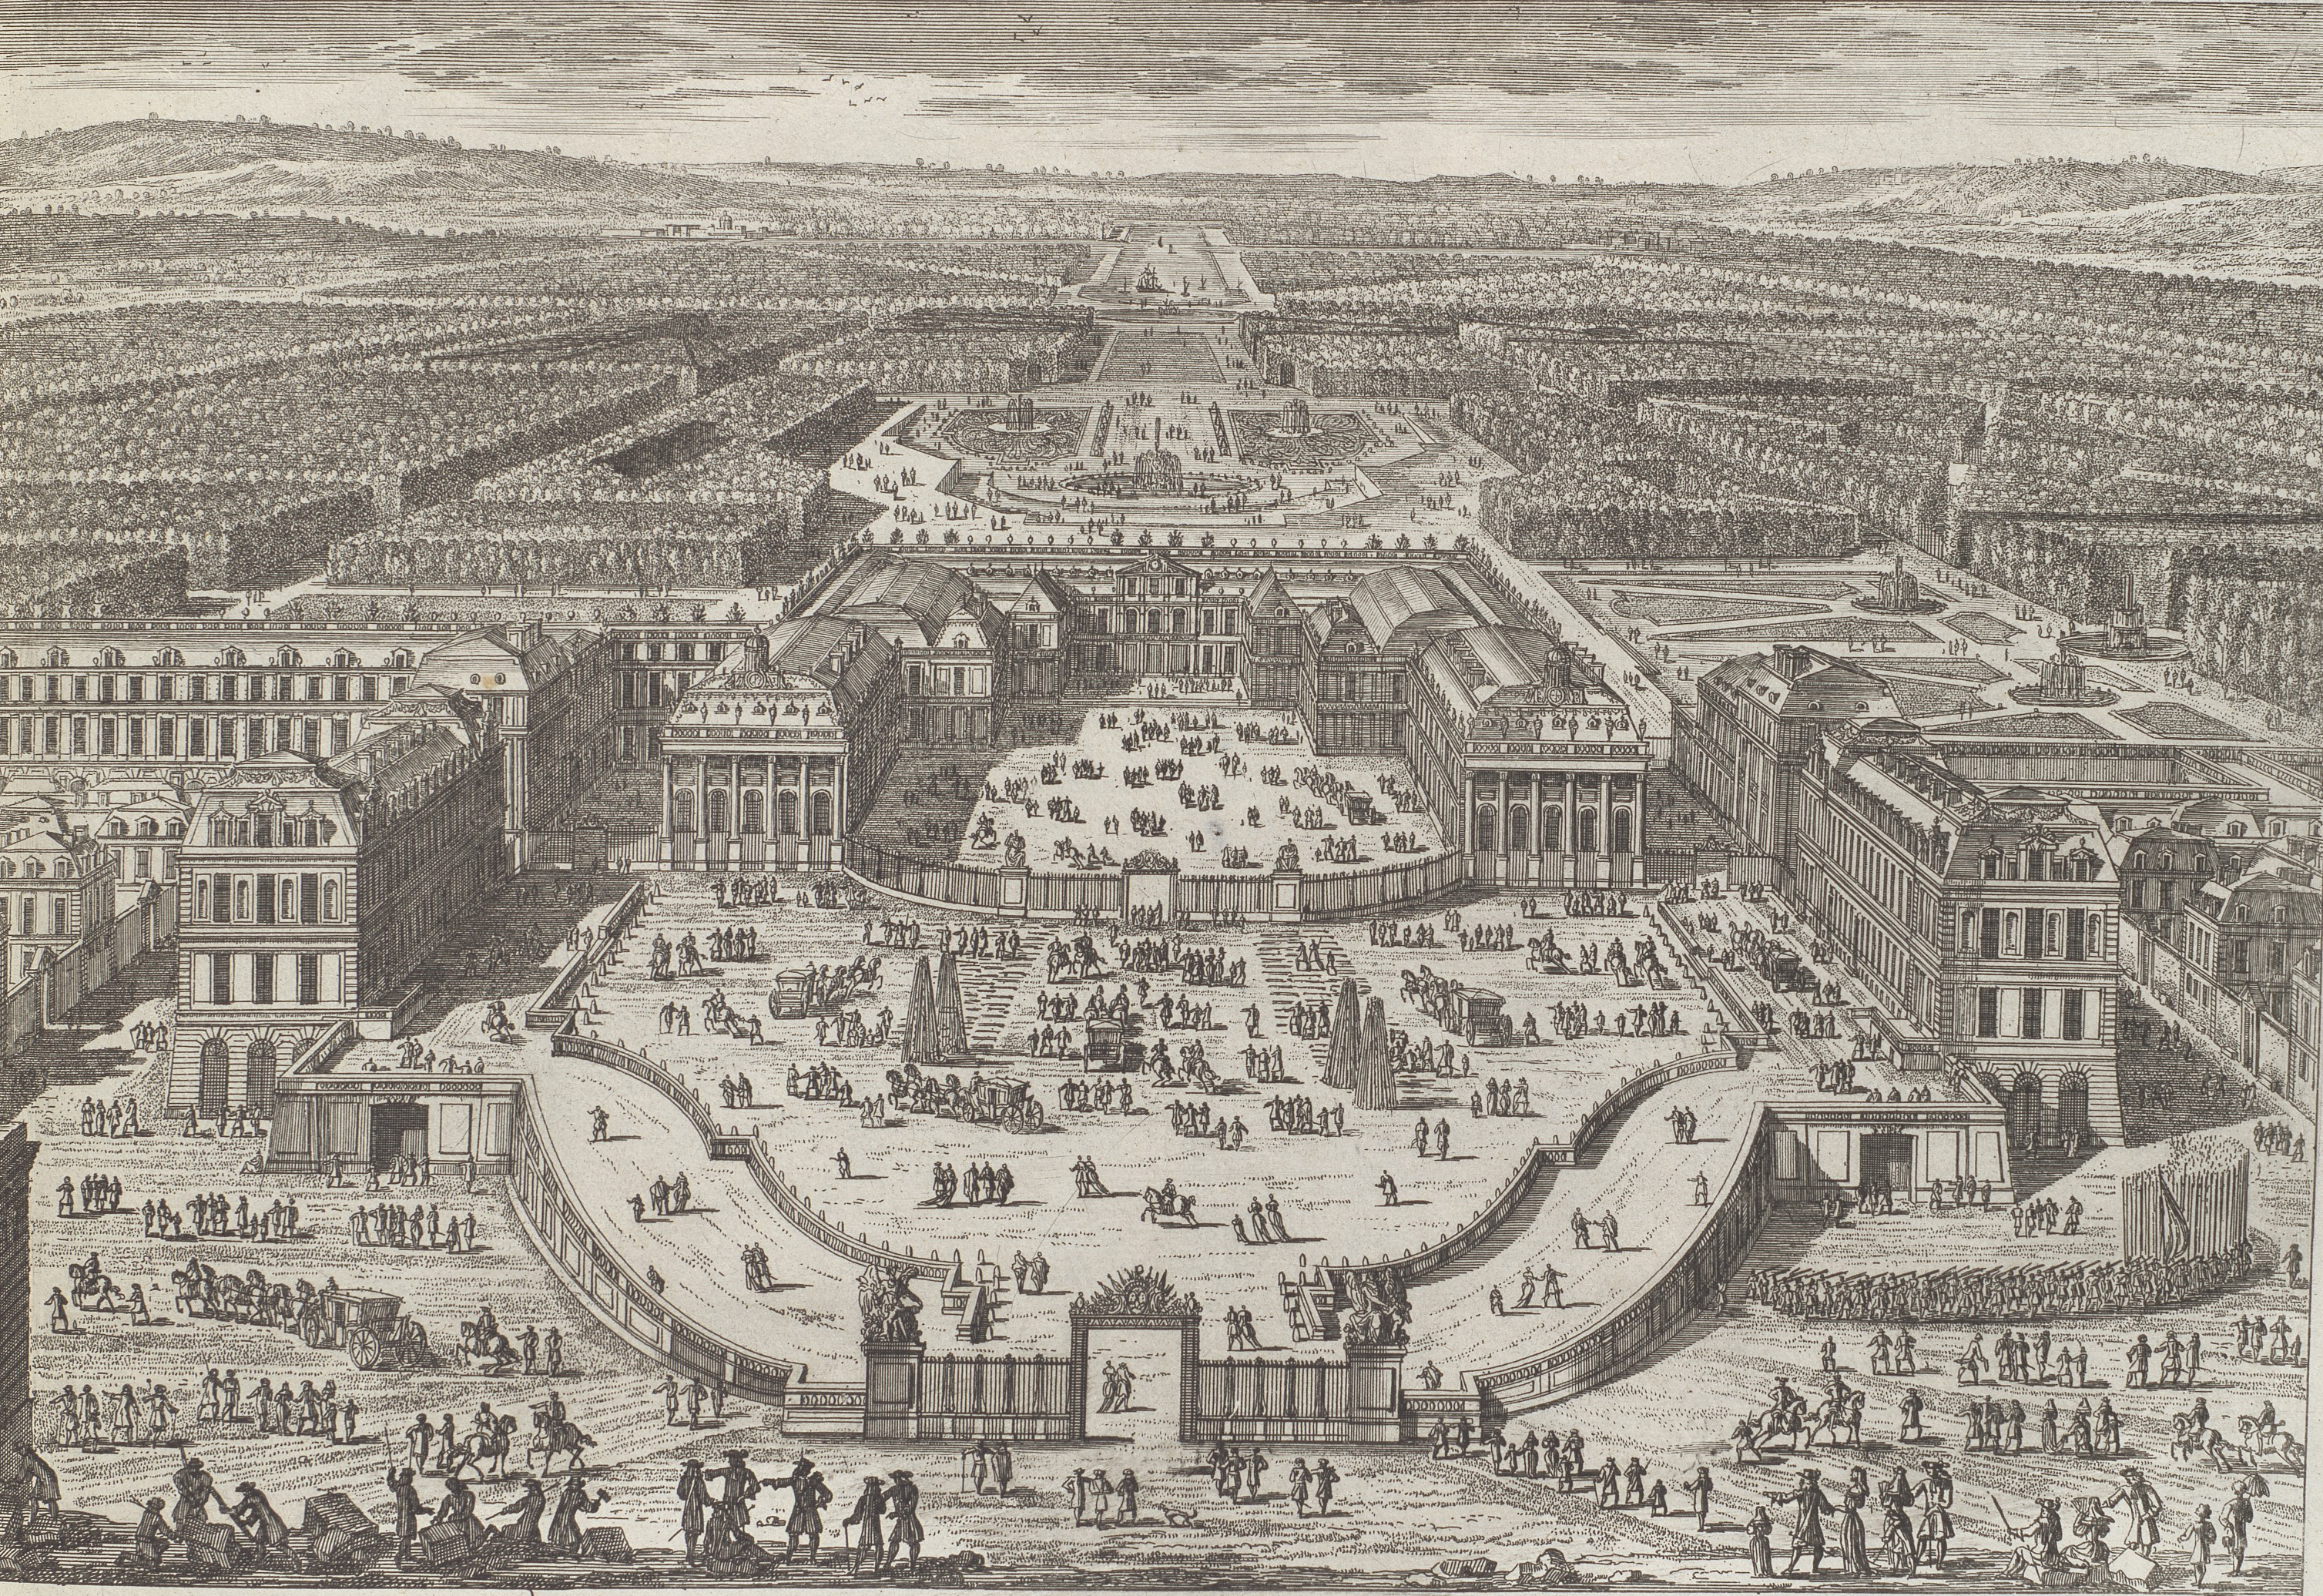 File:General view of Versailles in circa 1682 by Adam Perelle.png